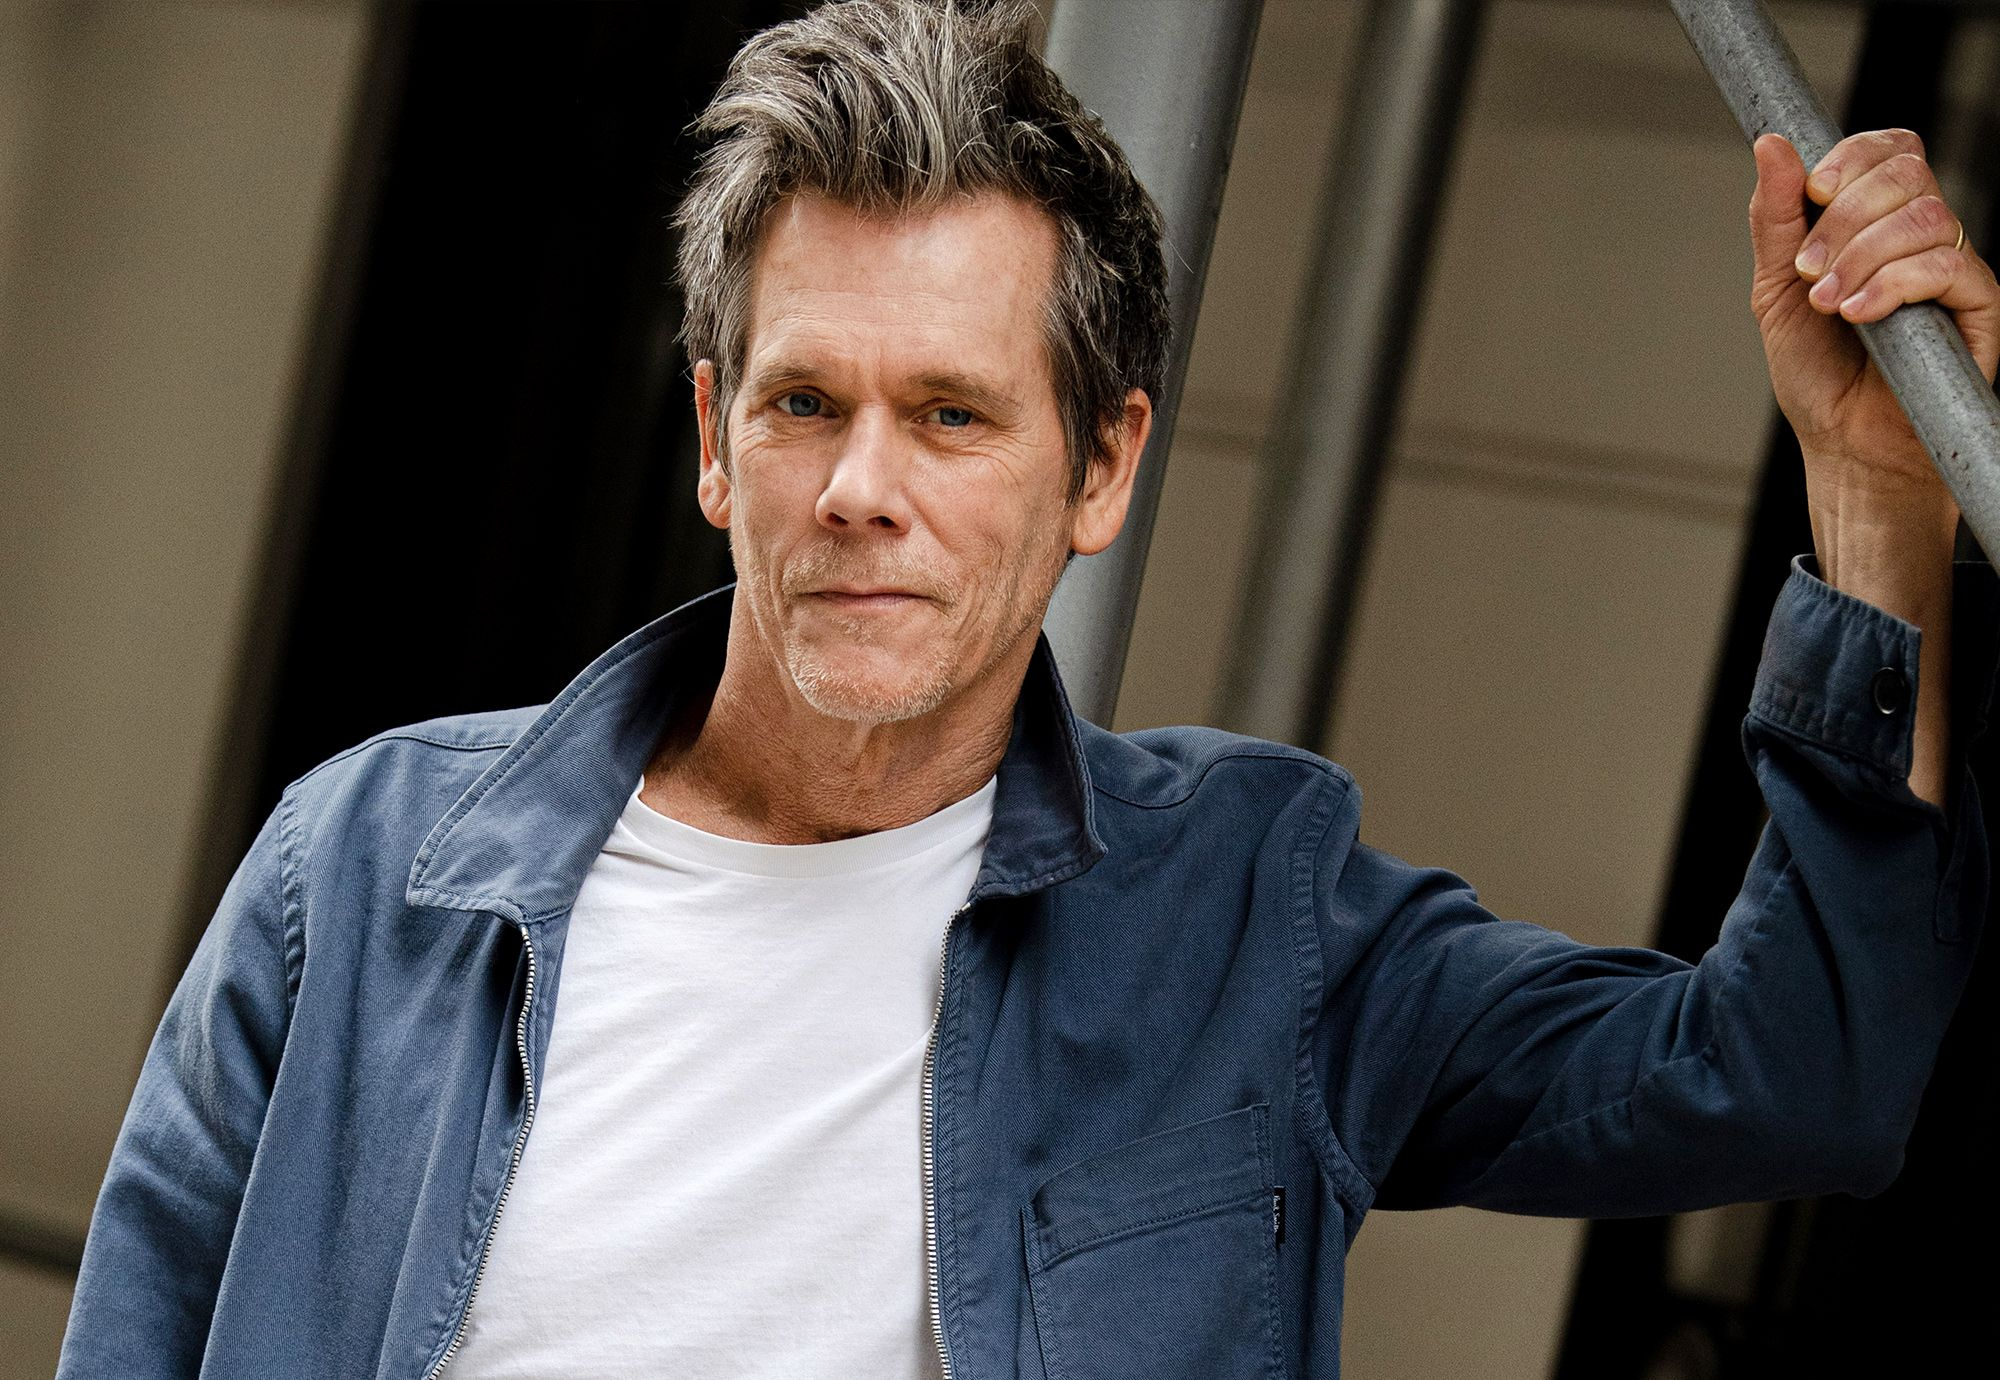 No One Knows The Real Kevin Bacon, But Everyone Has a Favorite Version of Him